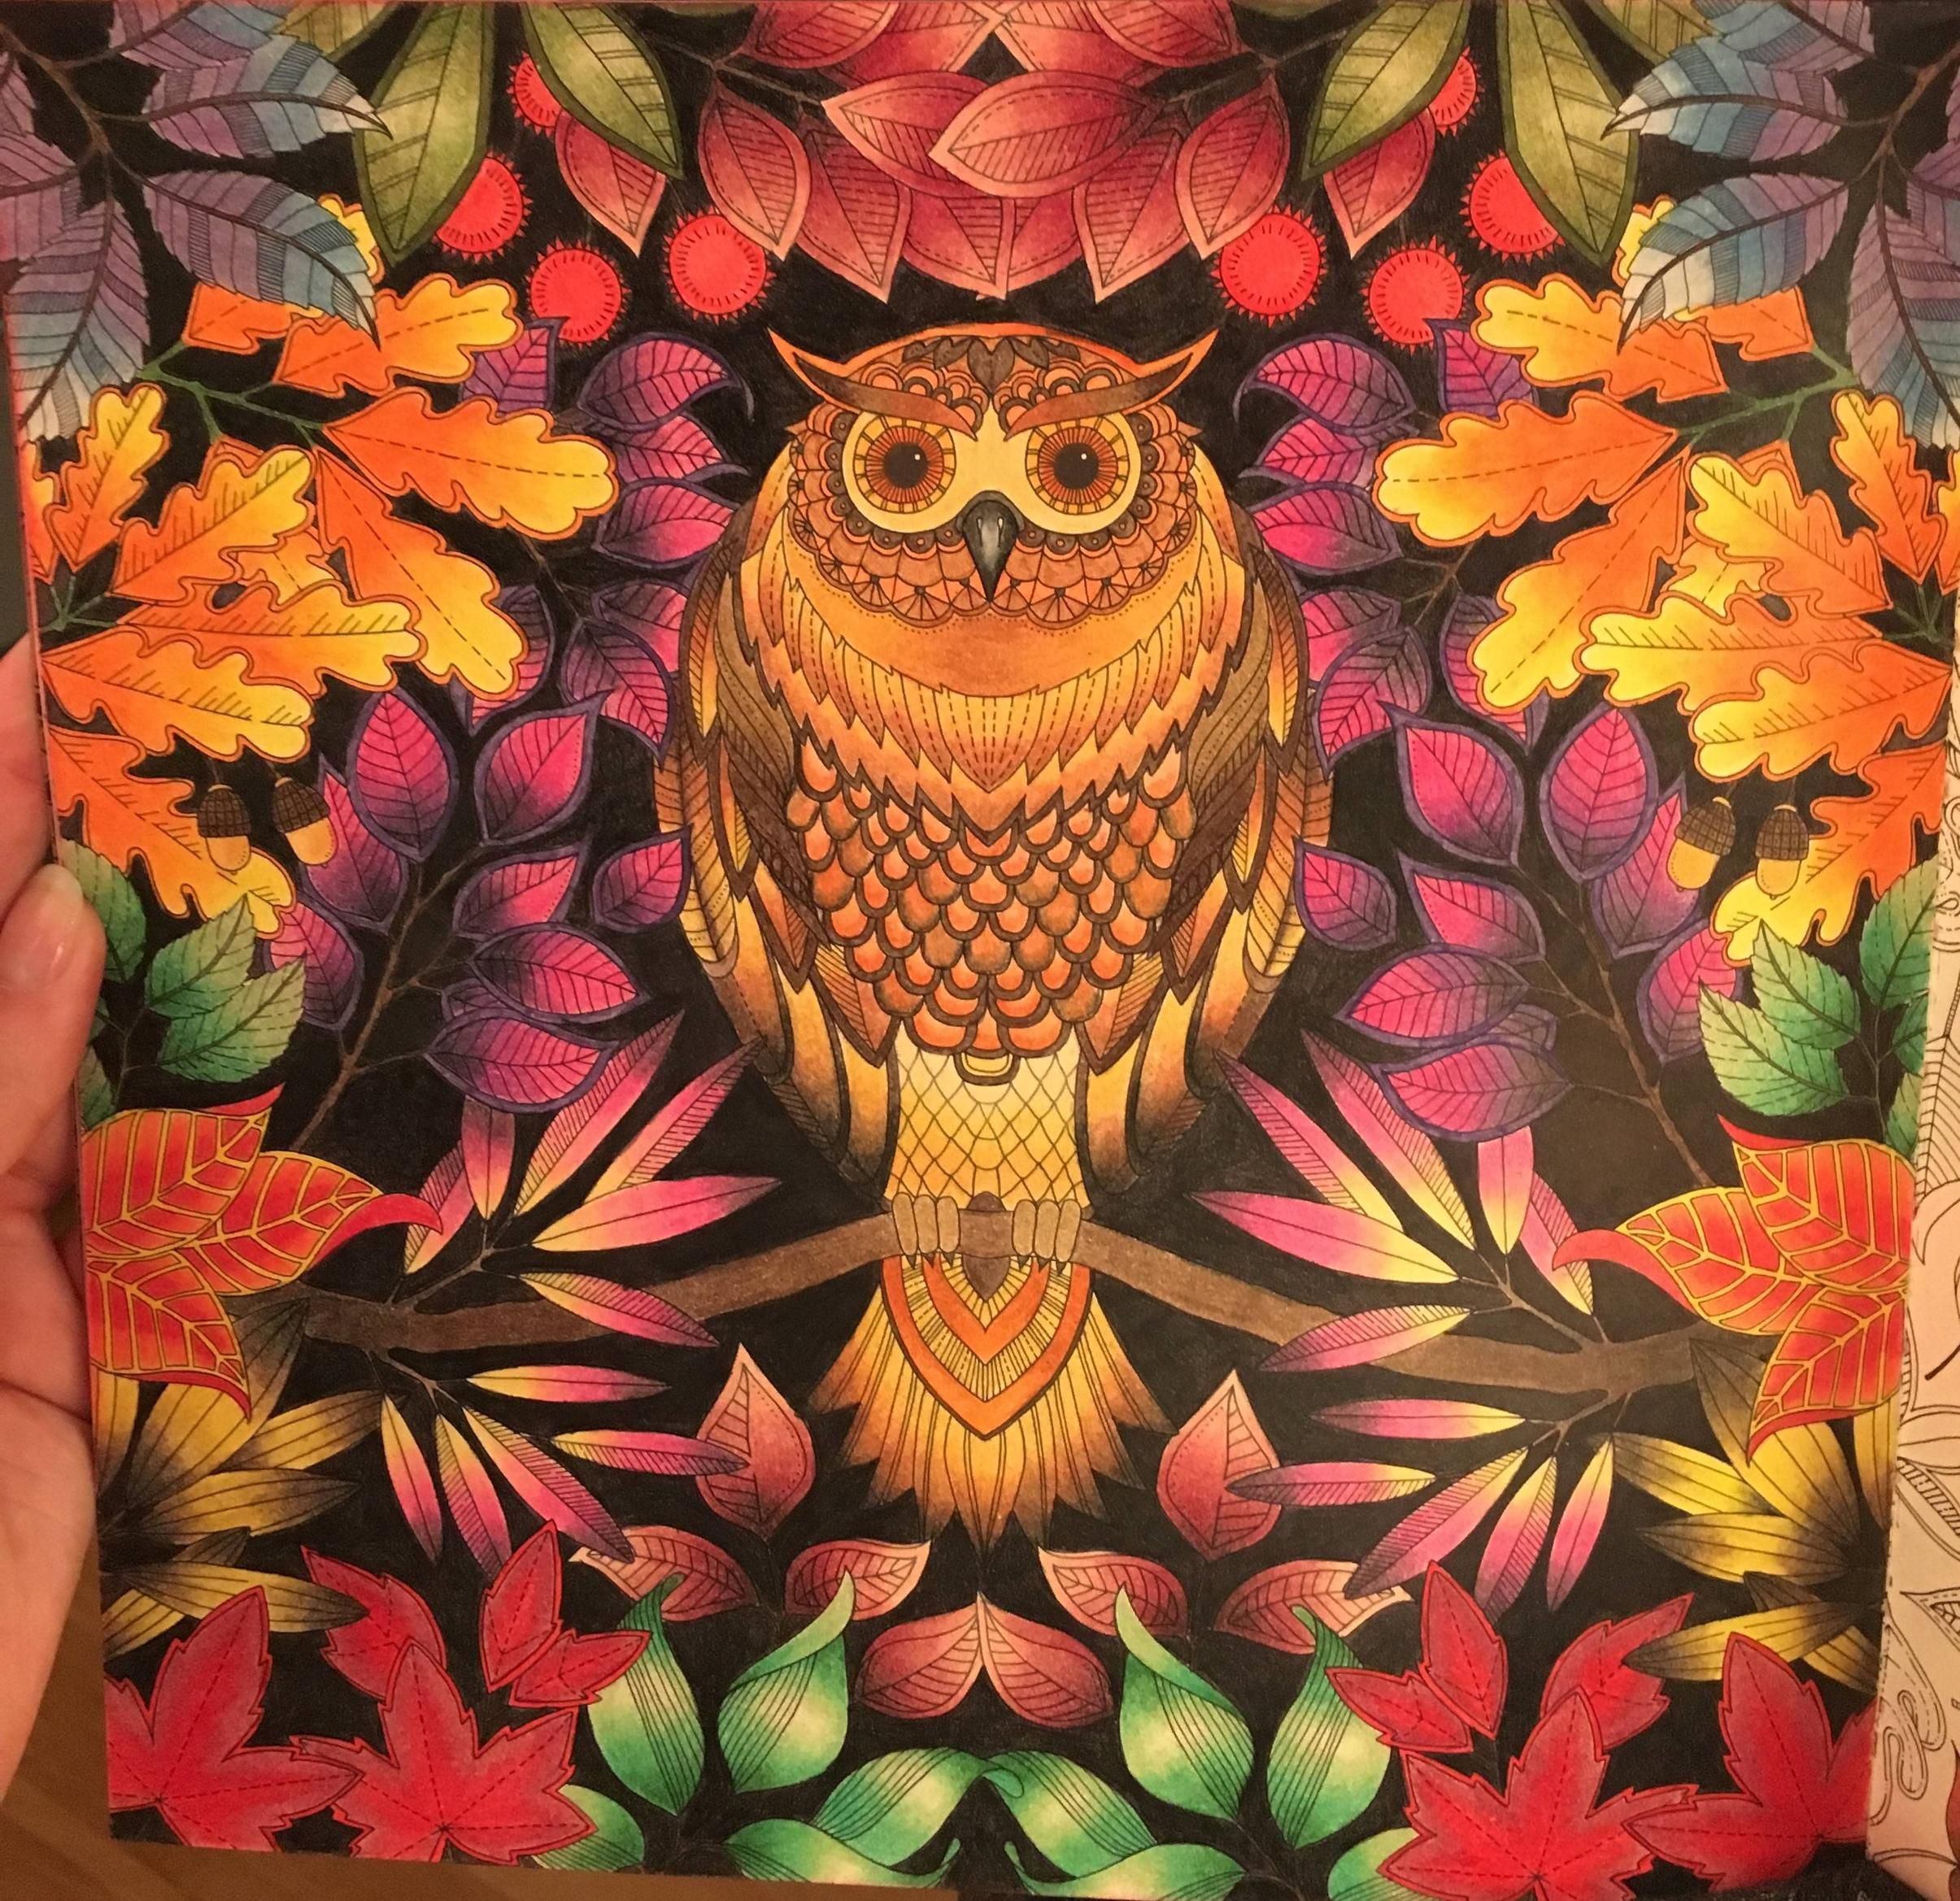 Colouring Coloring Adultcoloringin Inspiration My Version Of This Beautiful Owl Basford Secret Garden Johanna Basford Secret Garden Secret Garden Colouring